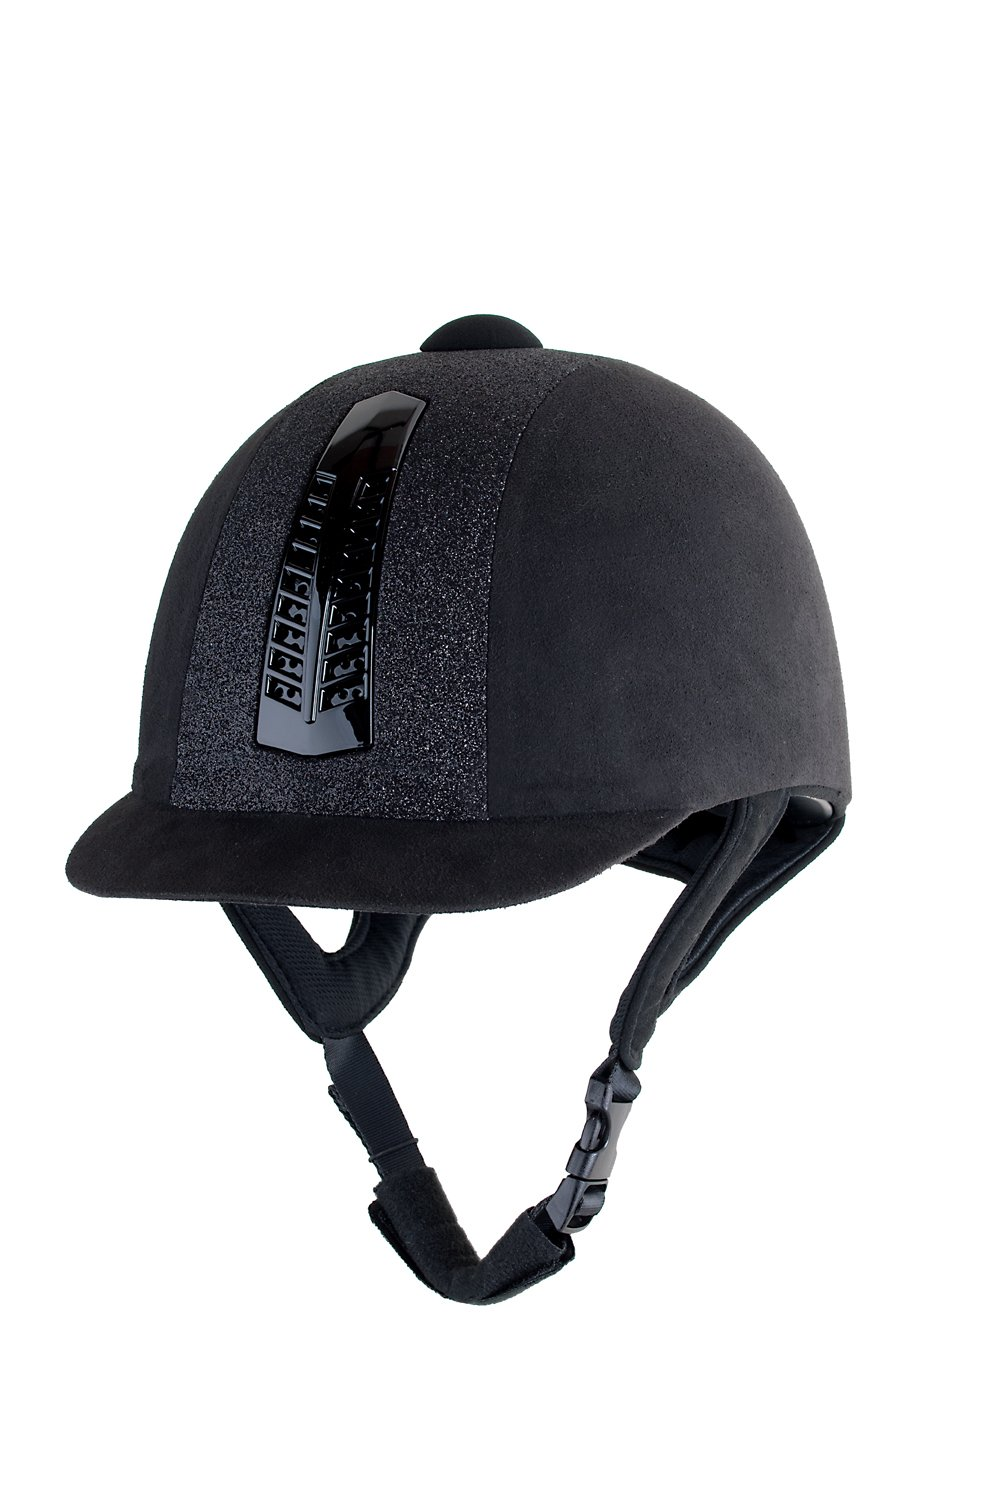 Rhinegold Black Glitter Pro Riding Hat